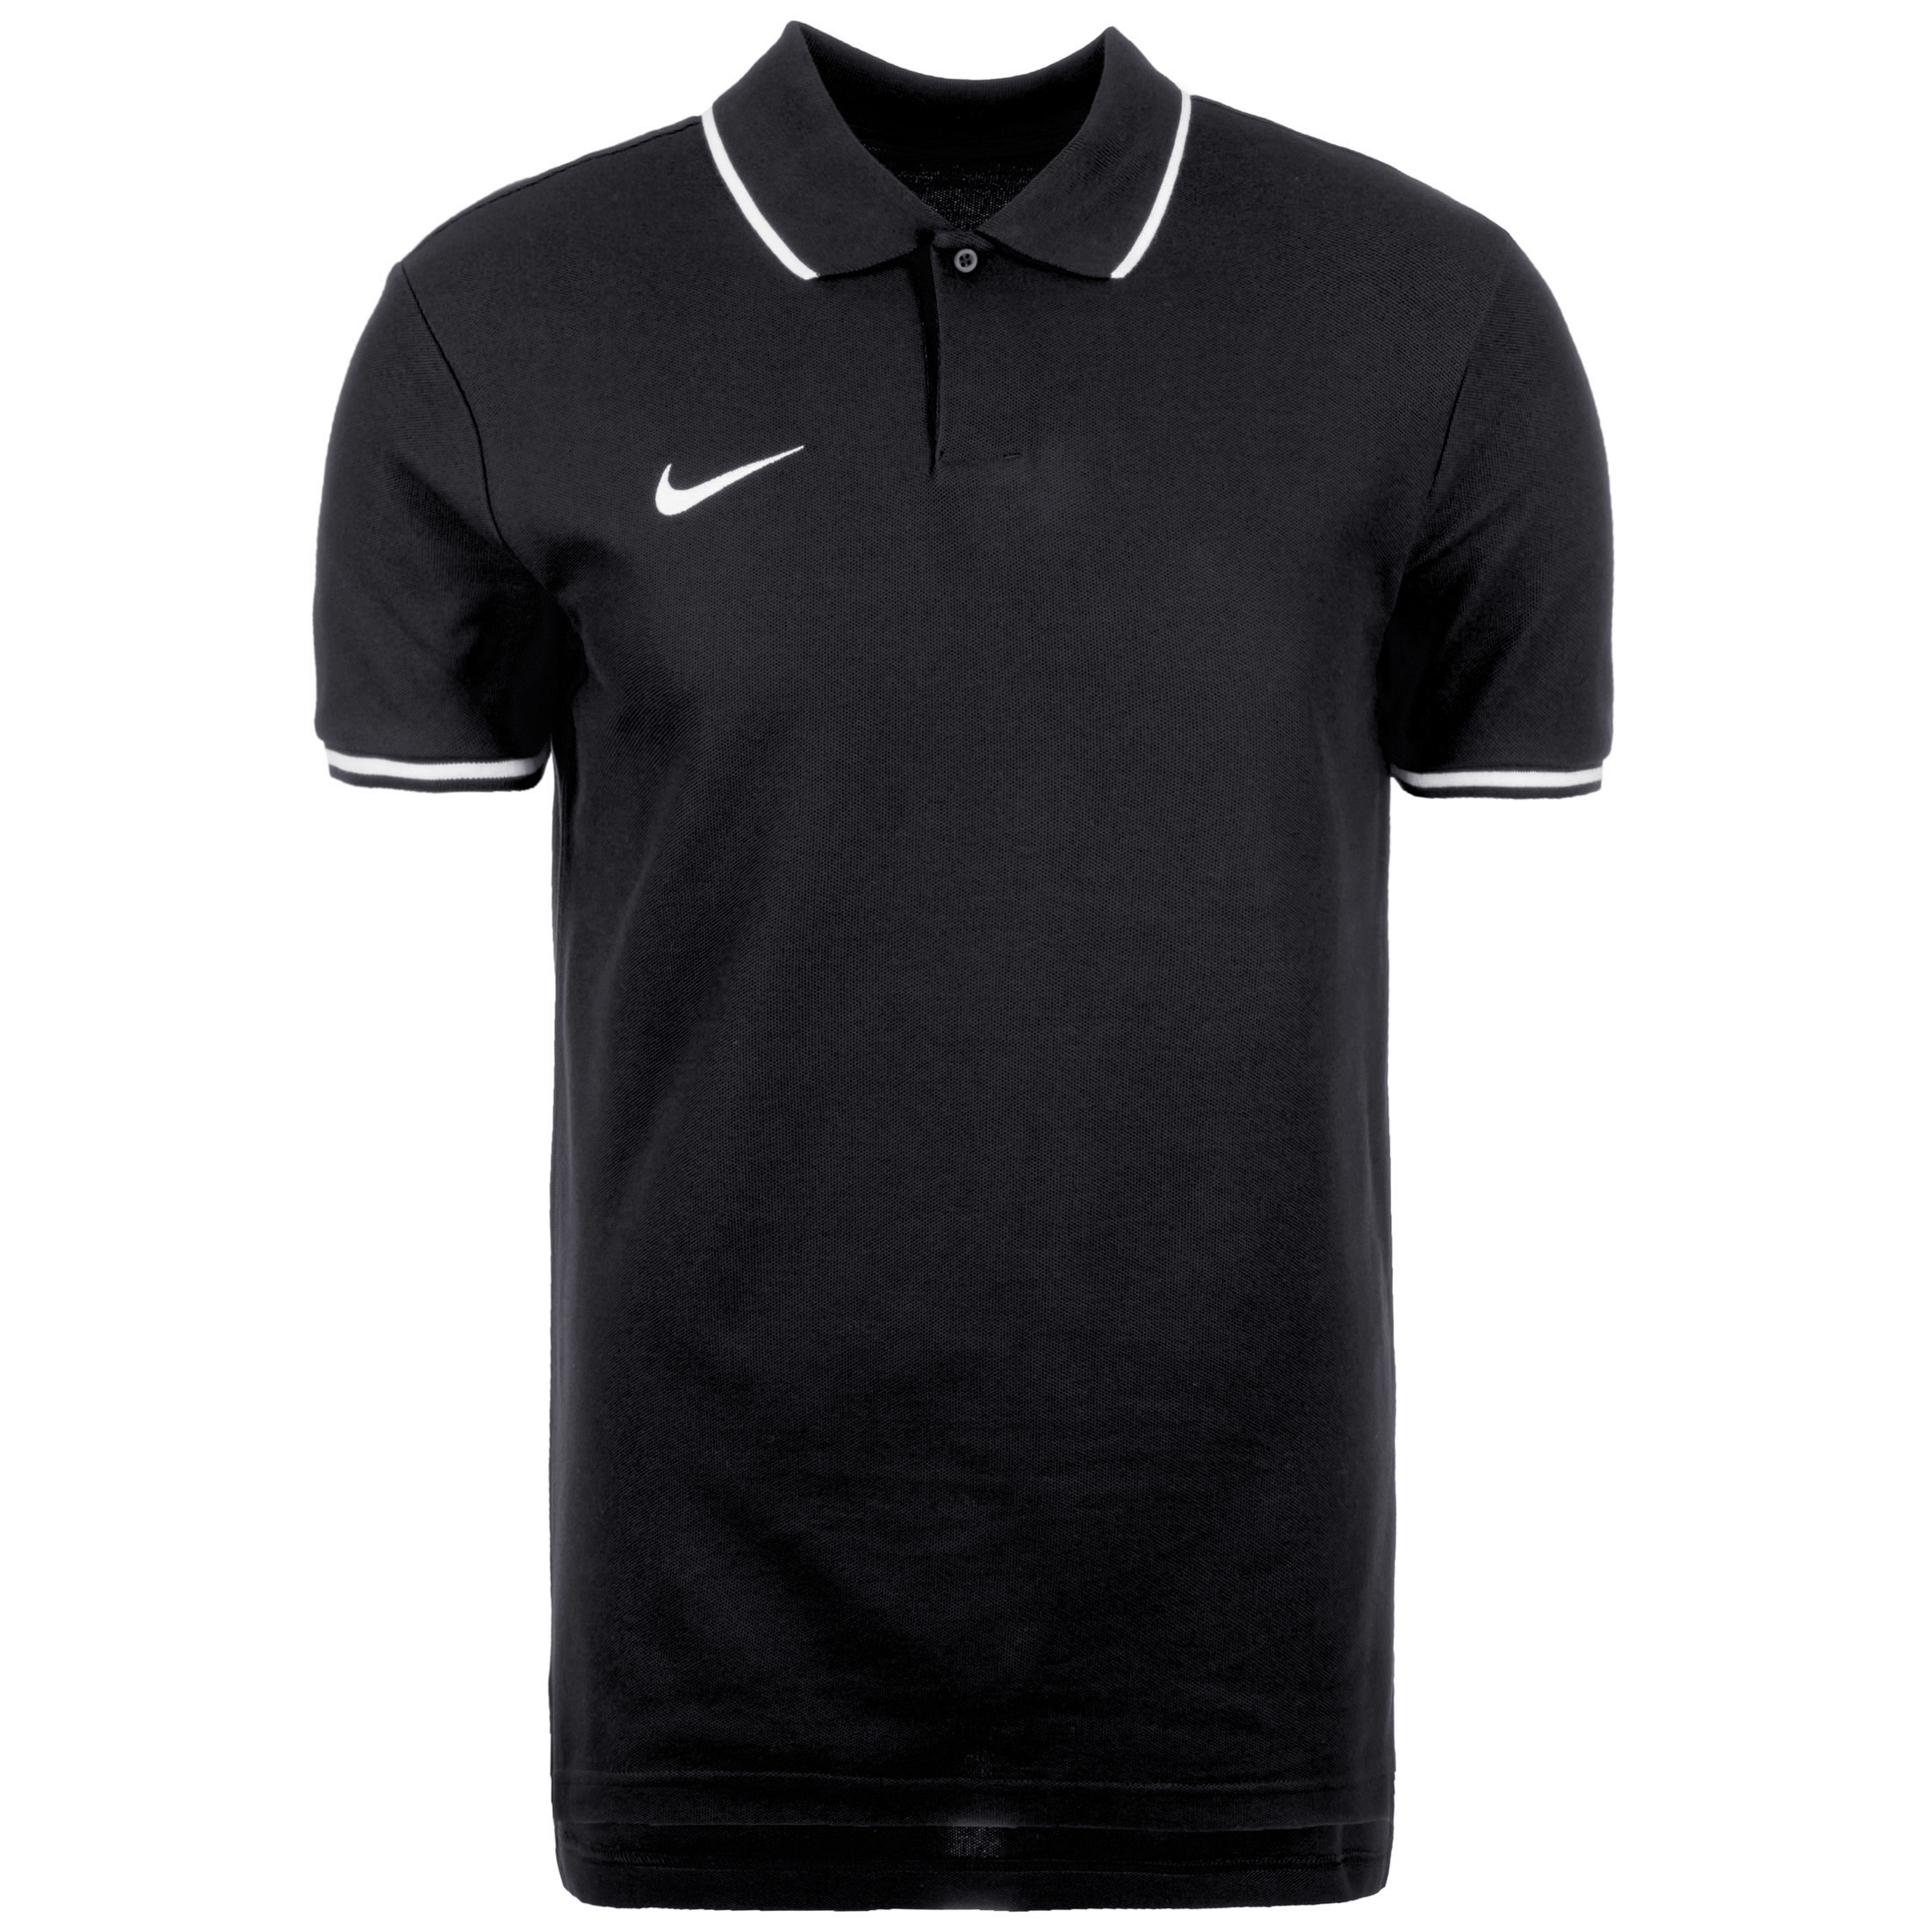 ec4b61a2 Nike Polo Team Club 19 - Black/White | AJ1502-010 | FOOTY.COM